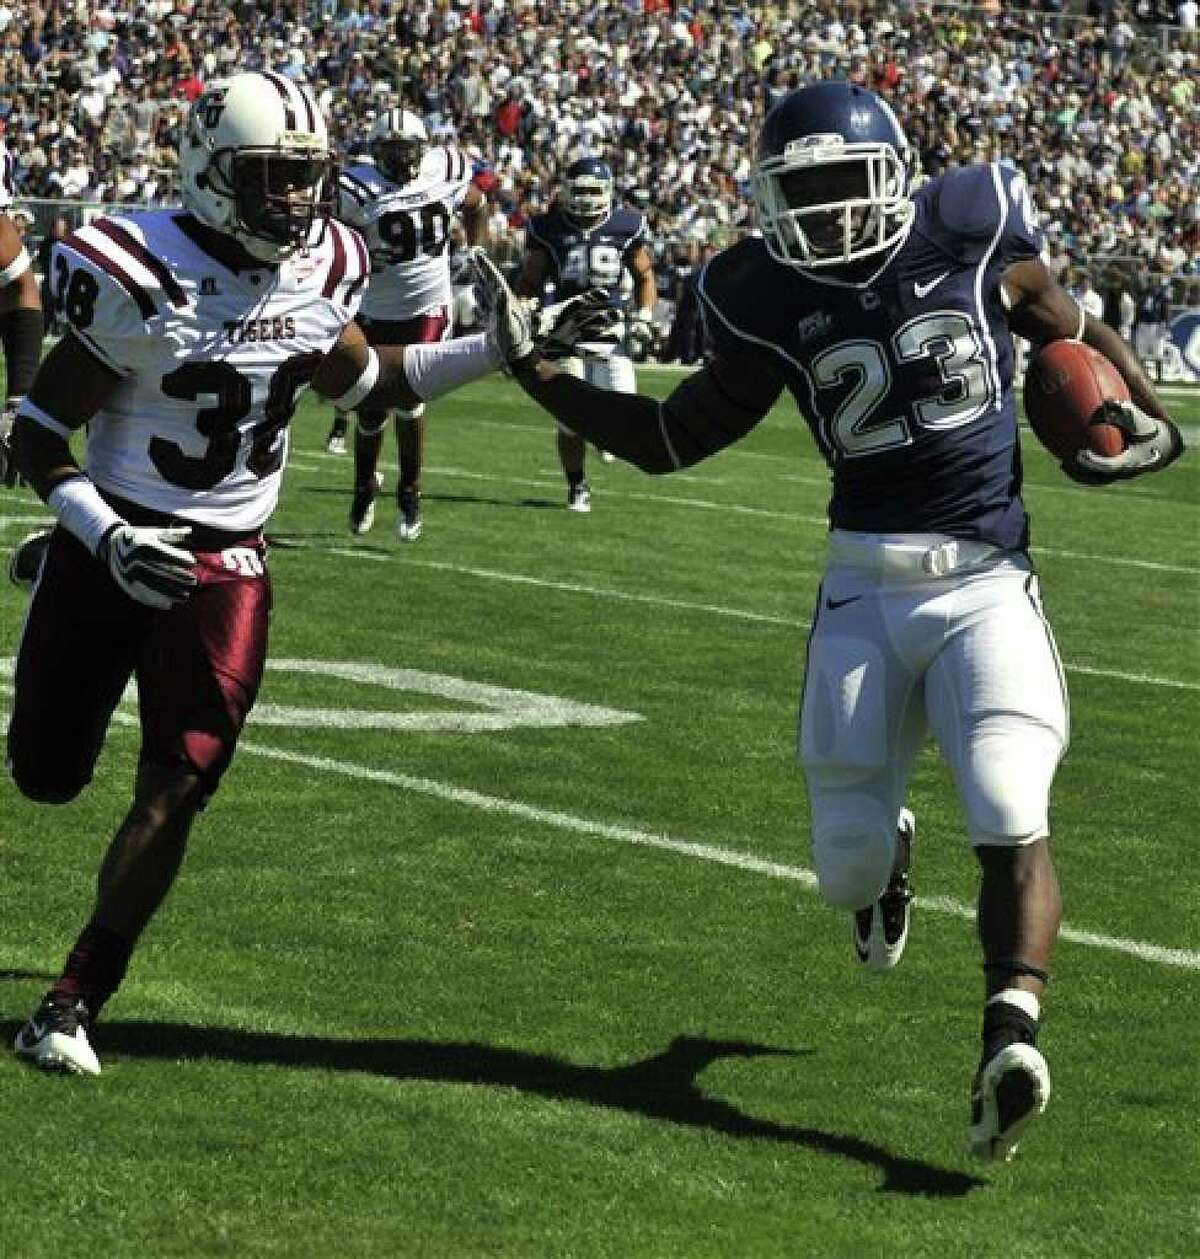 Connecticut's Jordan Todman (23) is pursued by Texas Southern's Zach Gallow during the first half of an NCAA college football game in East Hartford, Conn., Saturday, Sept. 11, 2010. (AP Photo/Jessica Hill)